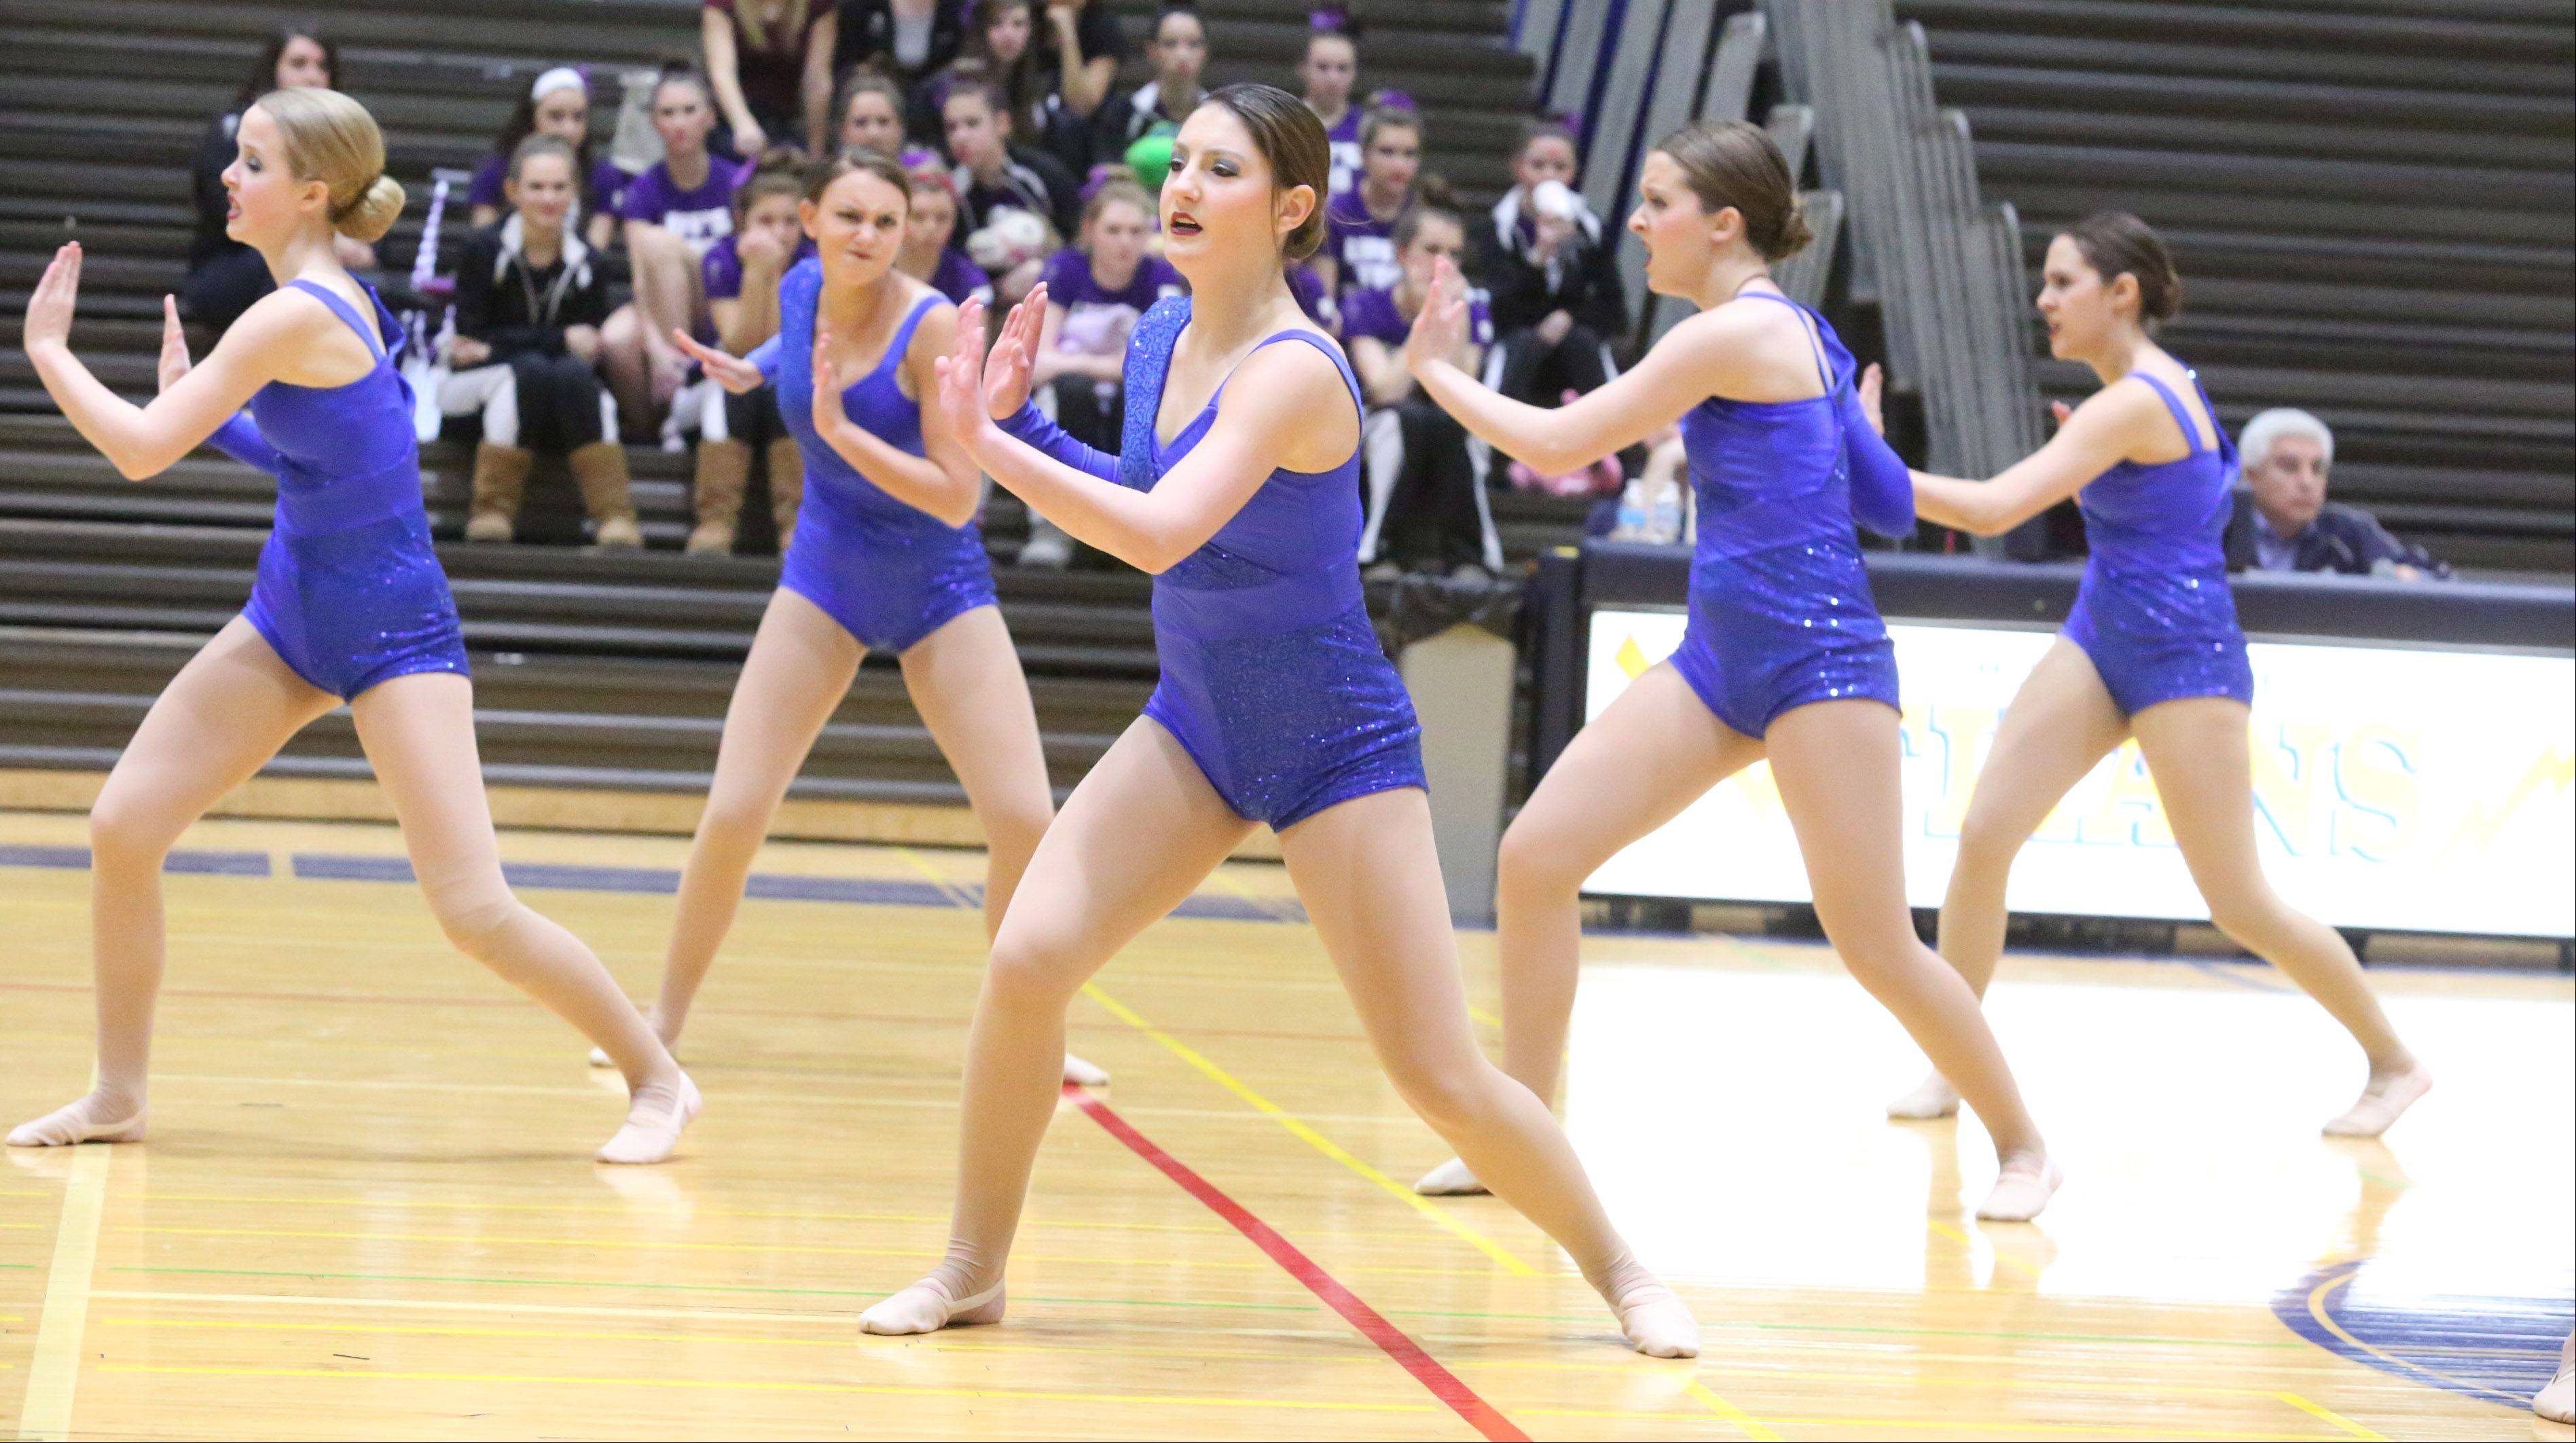 Vernon Hills High School's dance team competes at the IHSA competitive dance sectional at Glenbrook South High School on Saturday in Glenview.